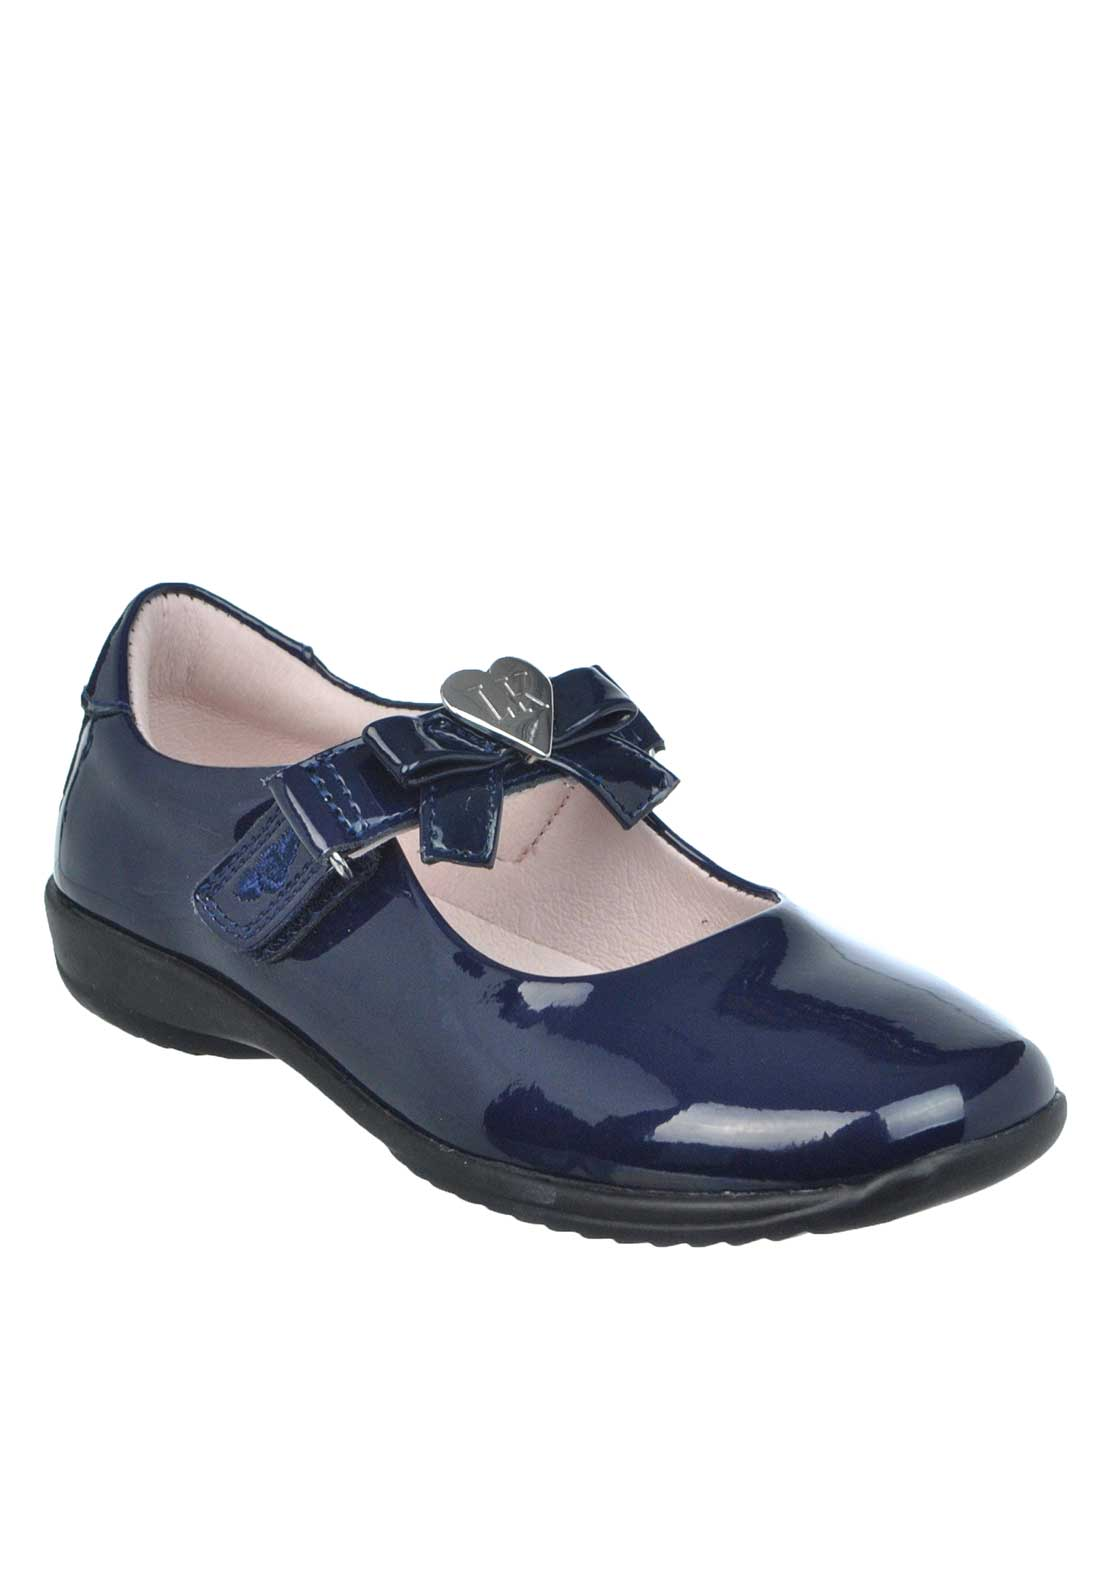 Lelli Kelly Girls Patent Leather Interchangeable Strap Shoes, Navy